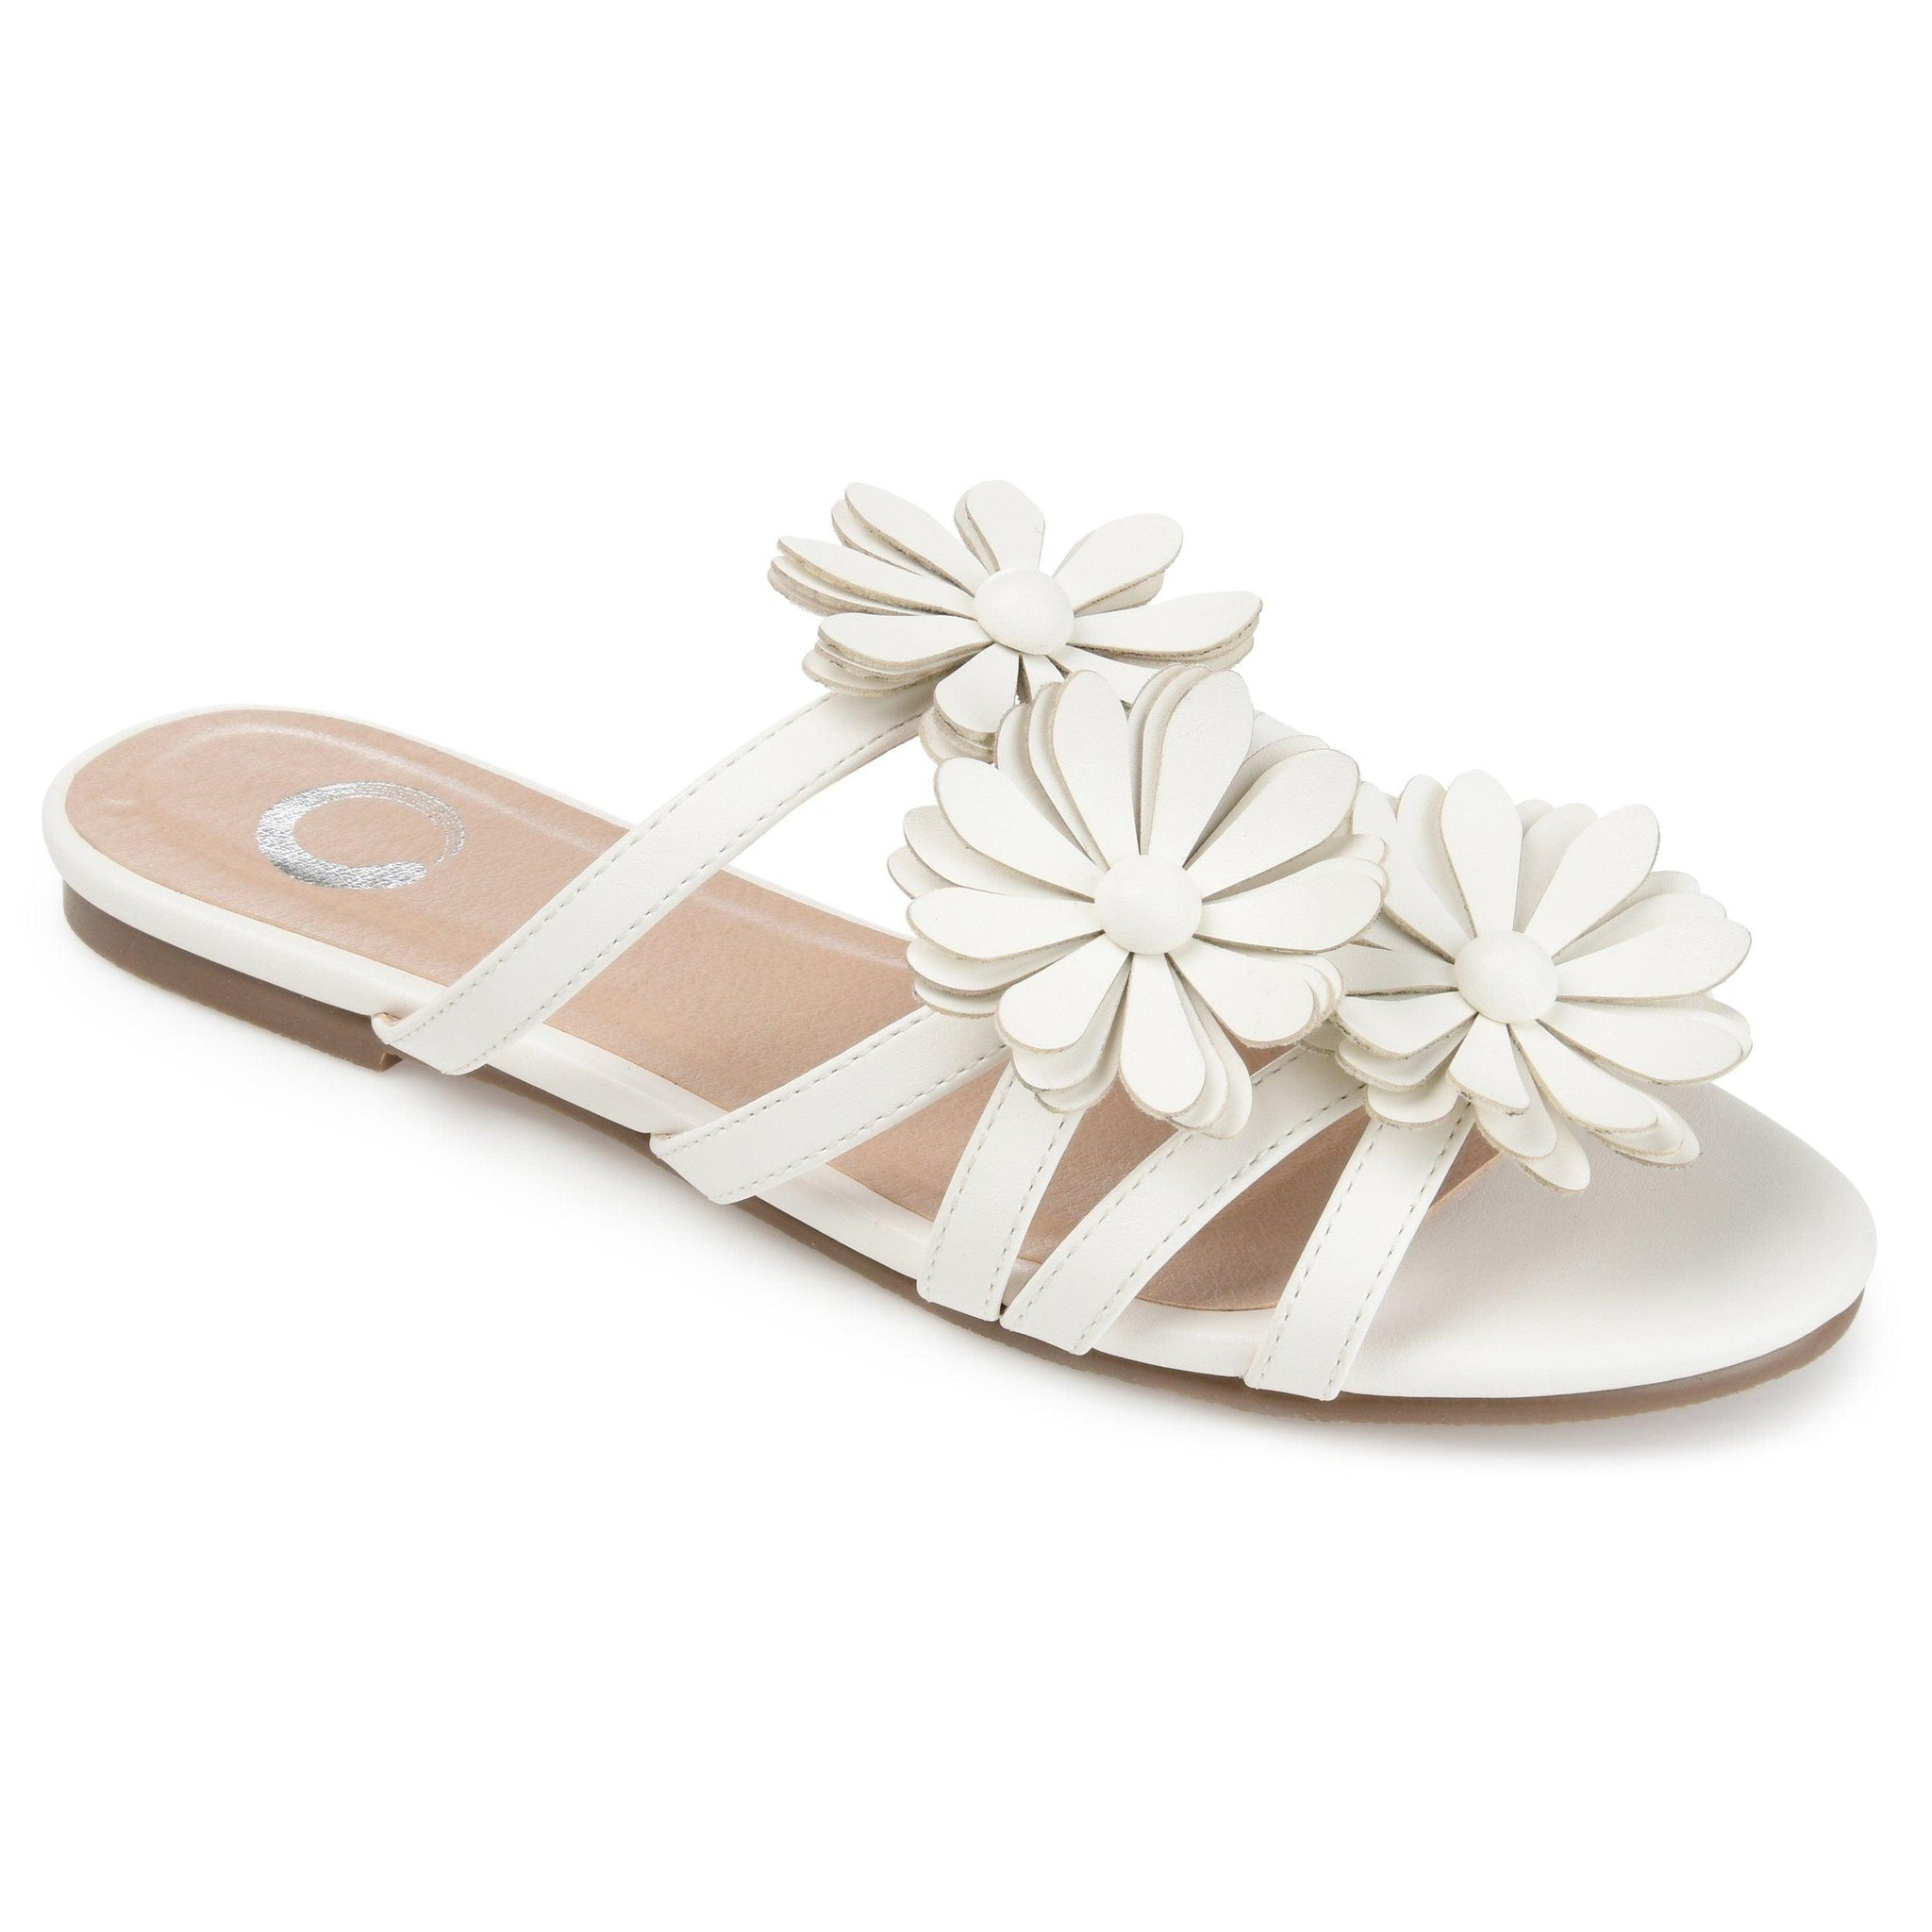 DOLLIAH SHOES Journee Collection White 7